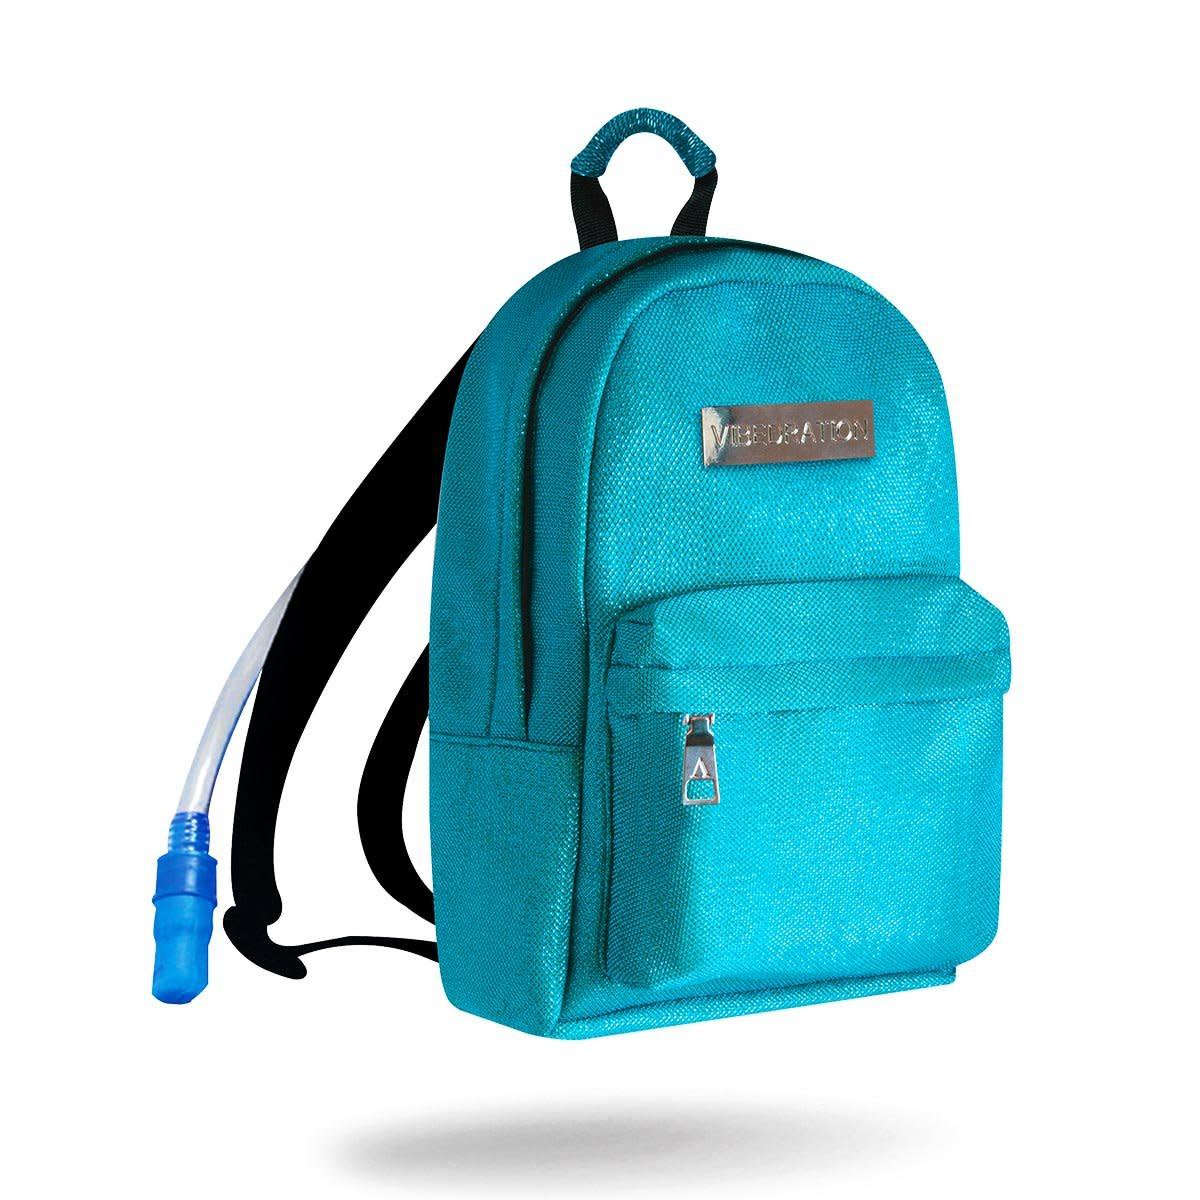 Petite-Rave-Hydration-Pack-one-liter-Rave-Bunny-Blue